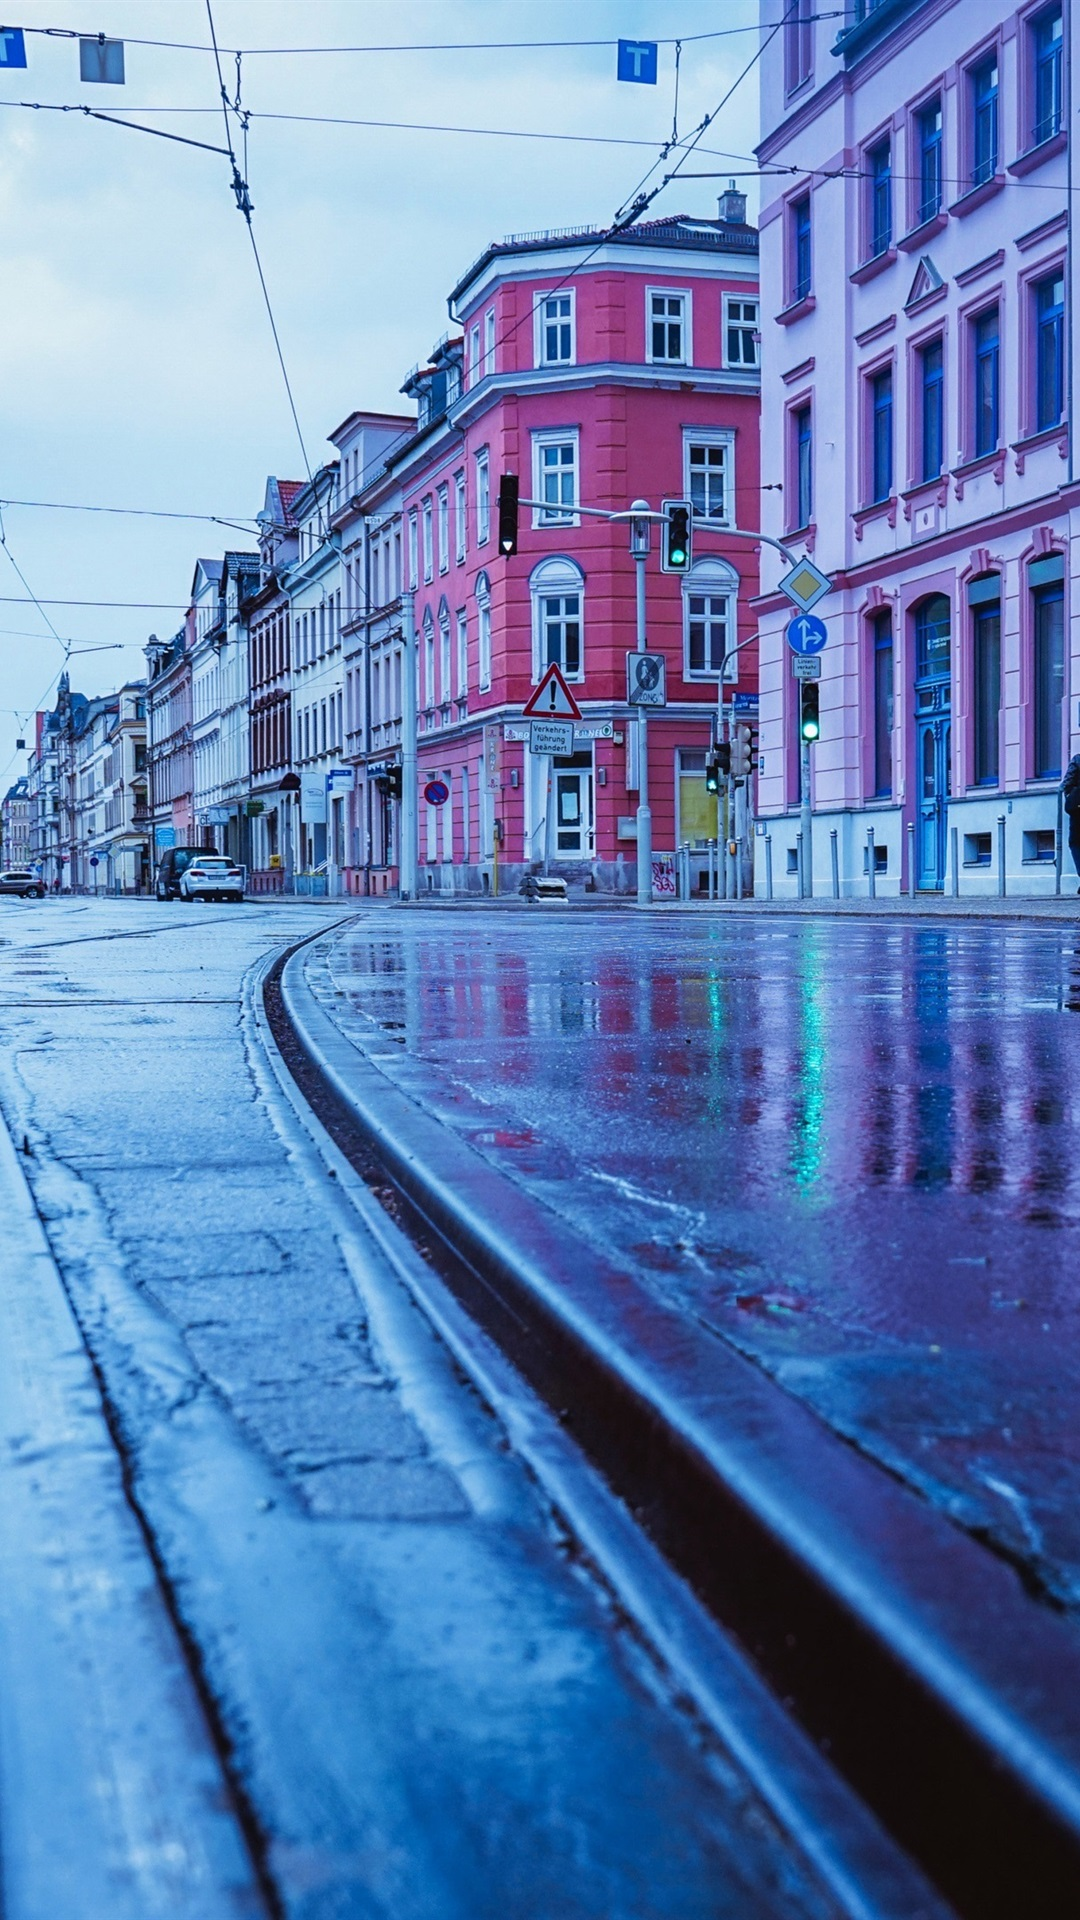 Wallpaper Germany Rainy Day City Street Wet Ground 3840x2160